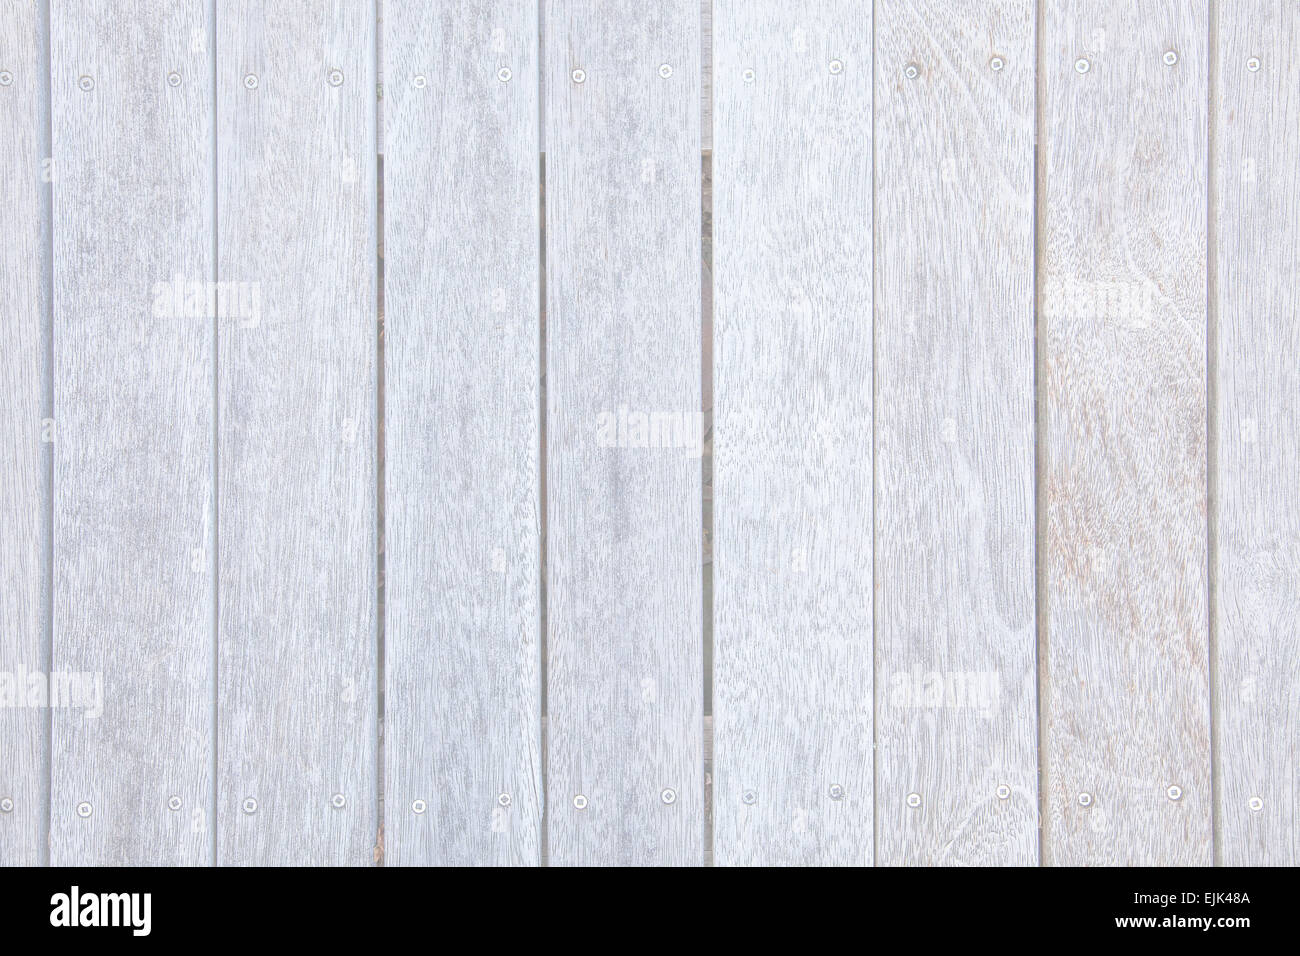 stock photo whitewashed old weathered wood background wooden texture pattern